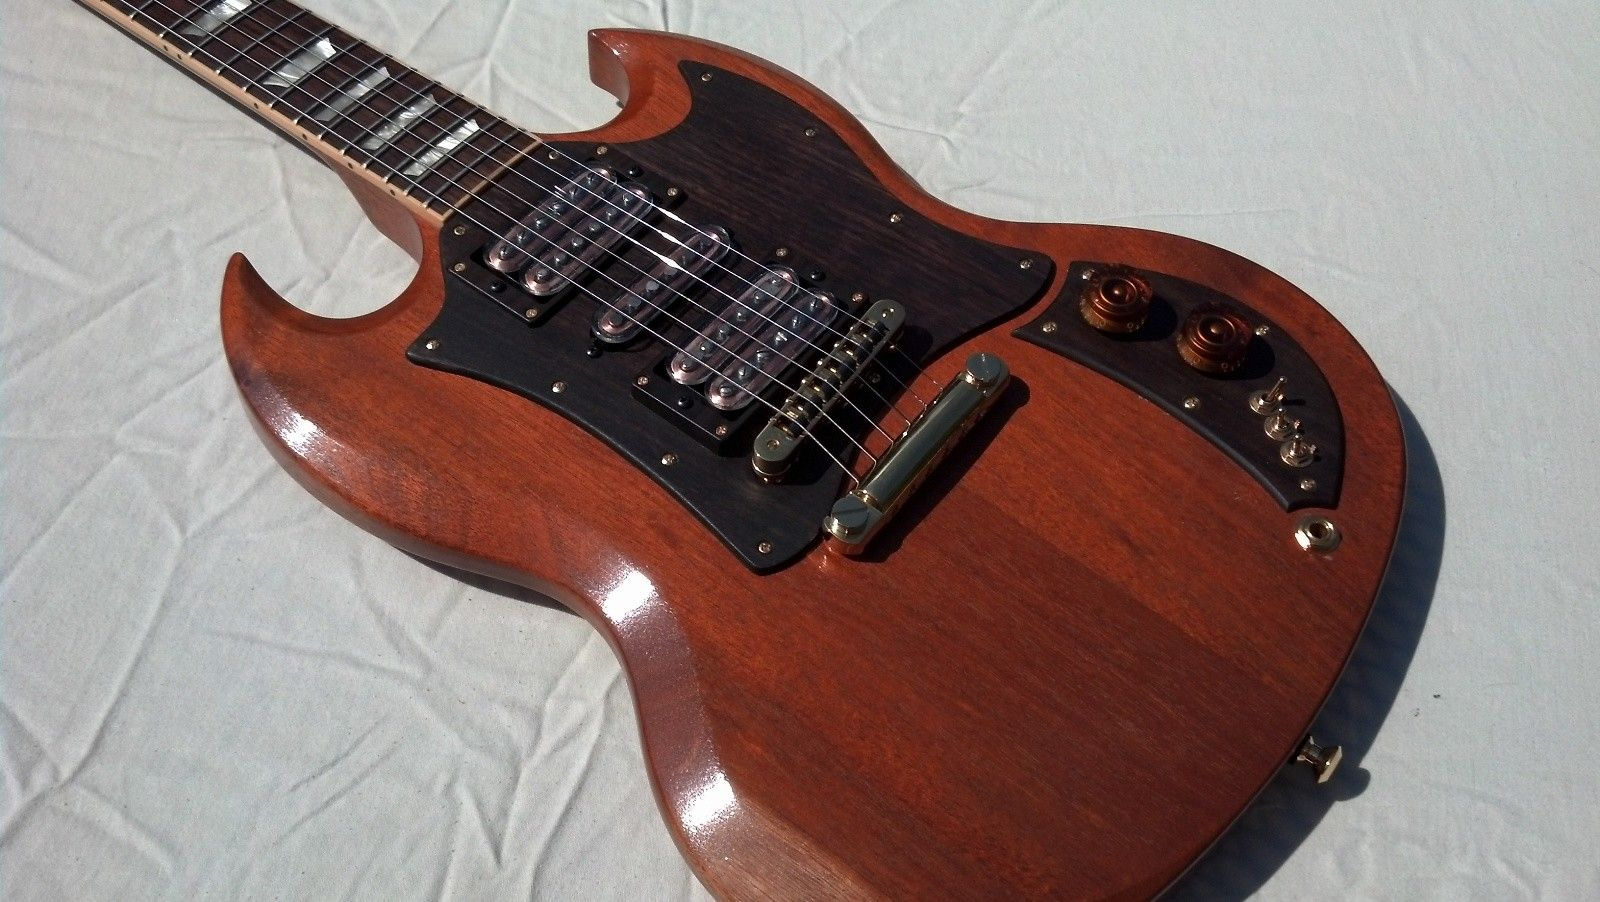 best looking sg i 39 ve seen wood and steel in 2019 guitar gibson sg gibson guitars. Black Bedroom Furniture Sets. Home Design Ideas